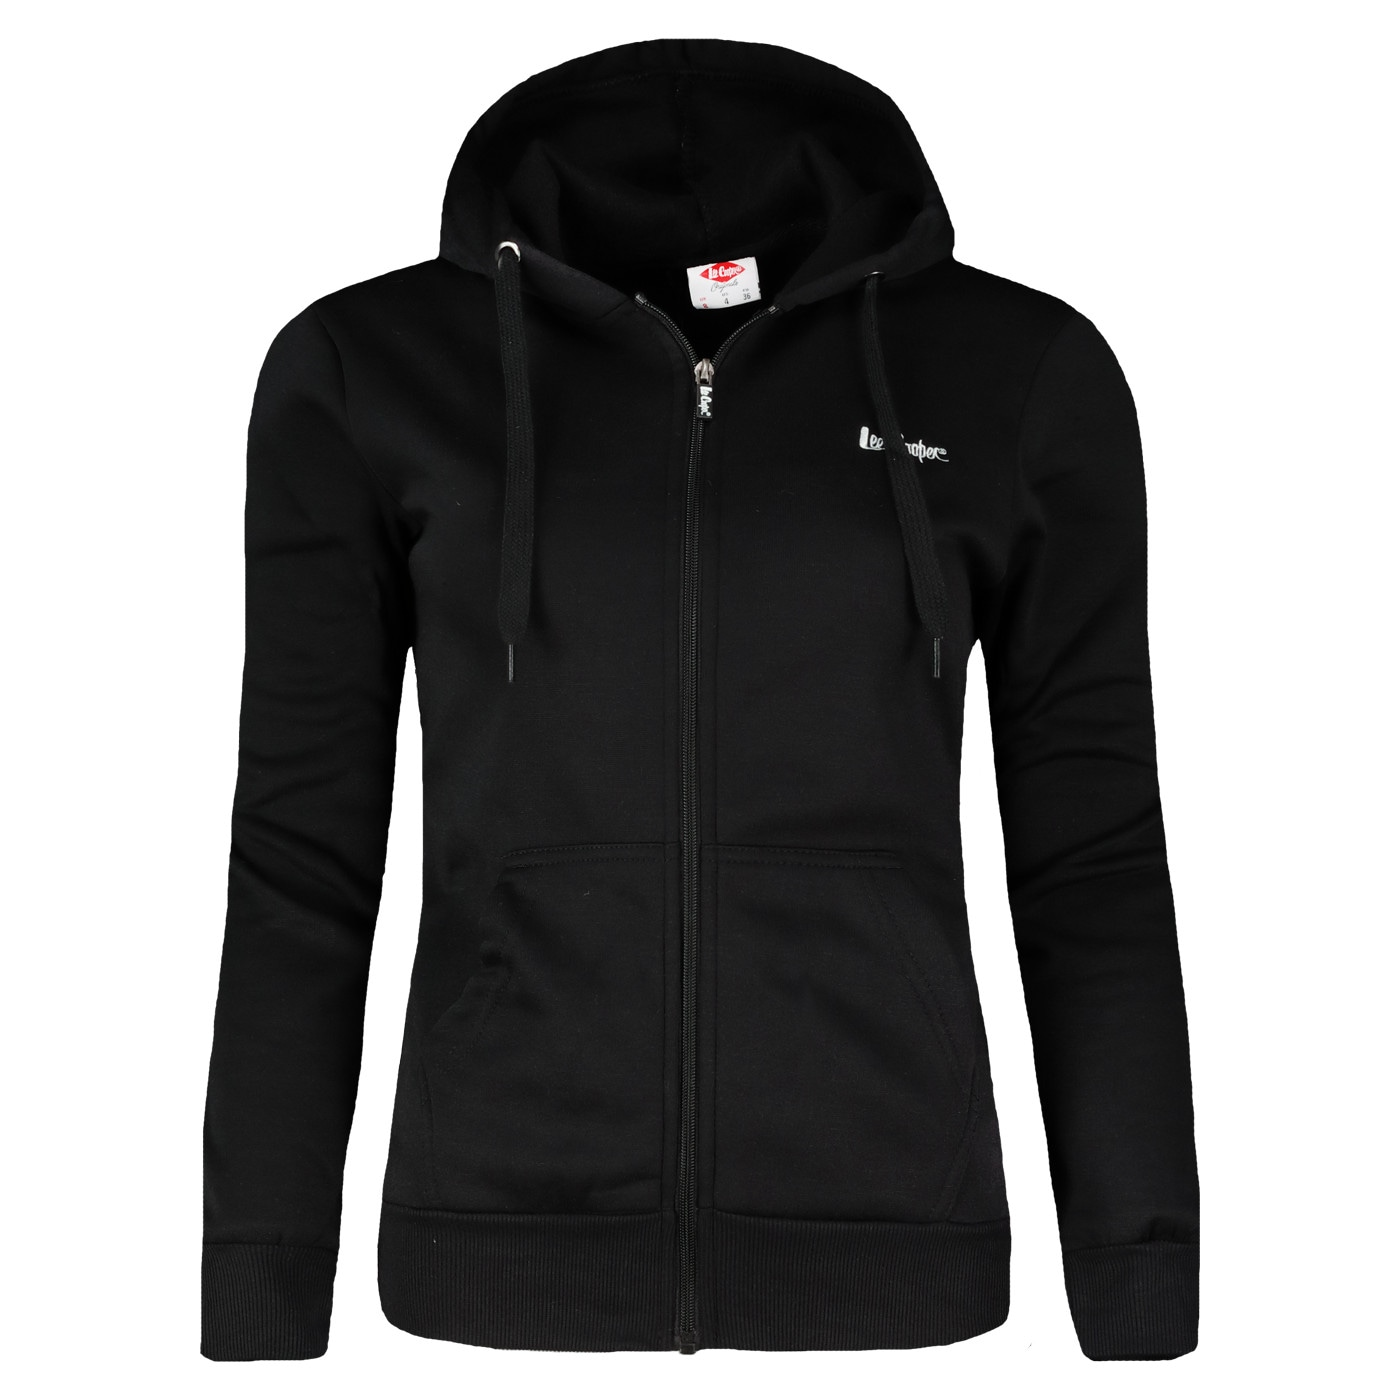 Lee Cooper Zip Thru Hoody Ladies